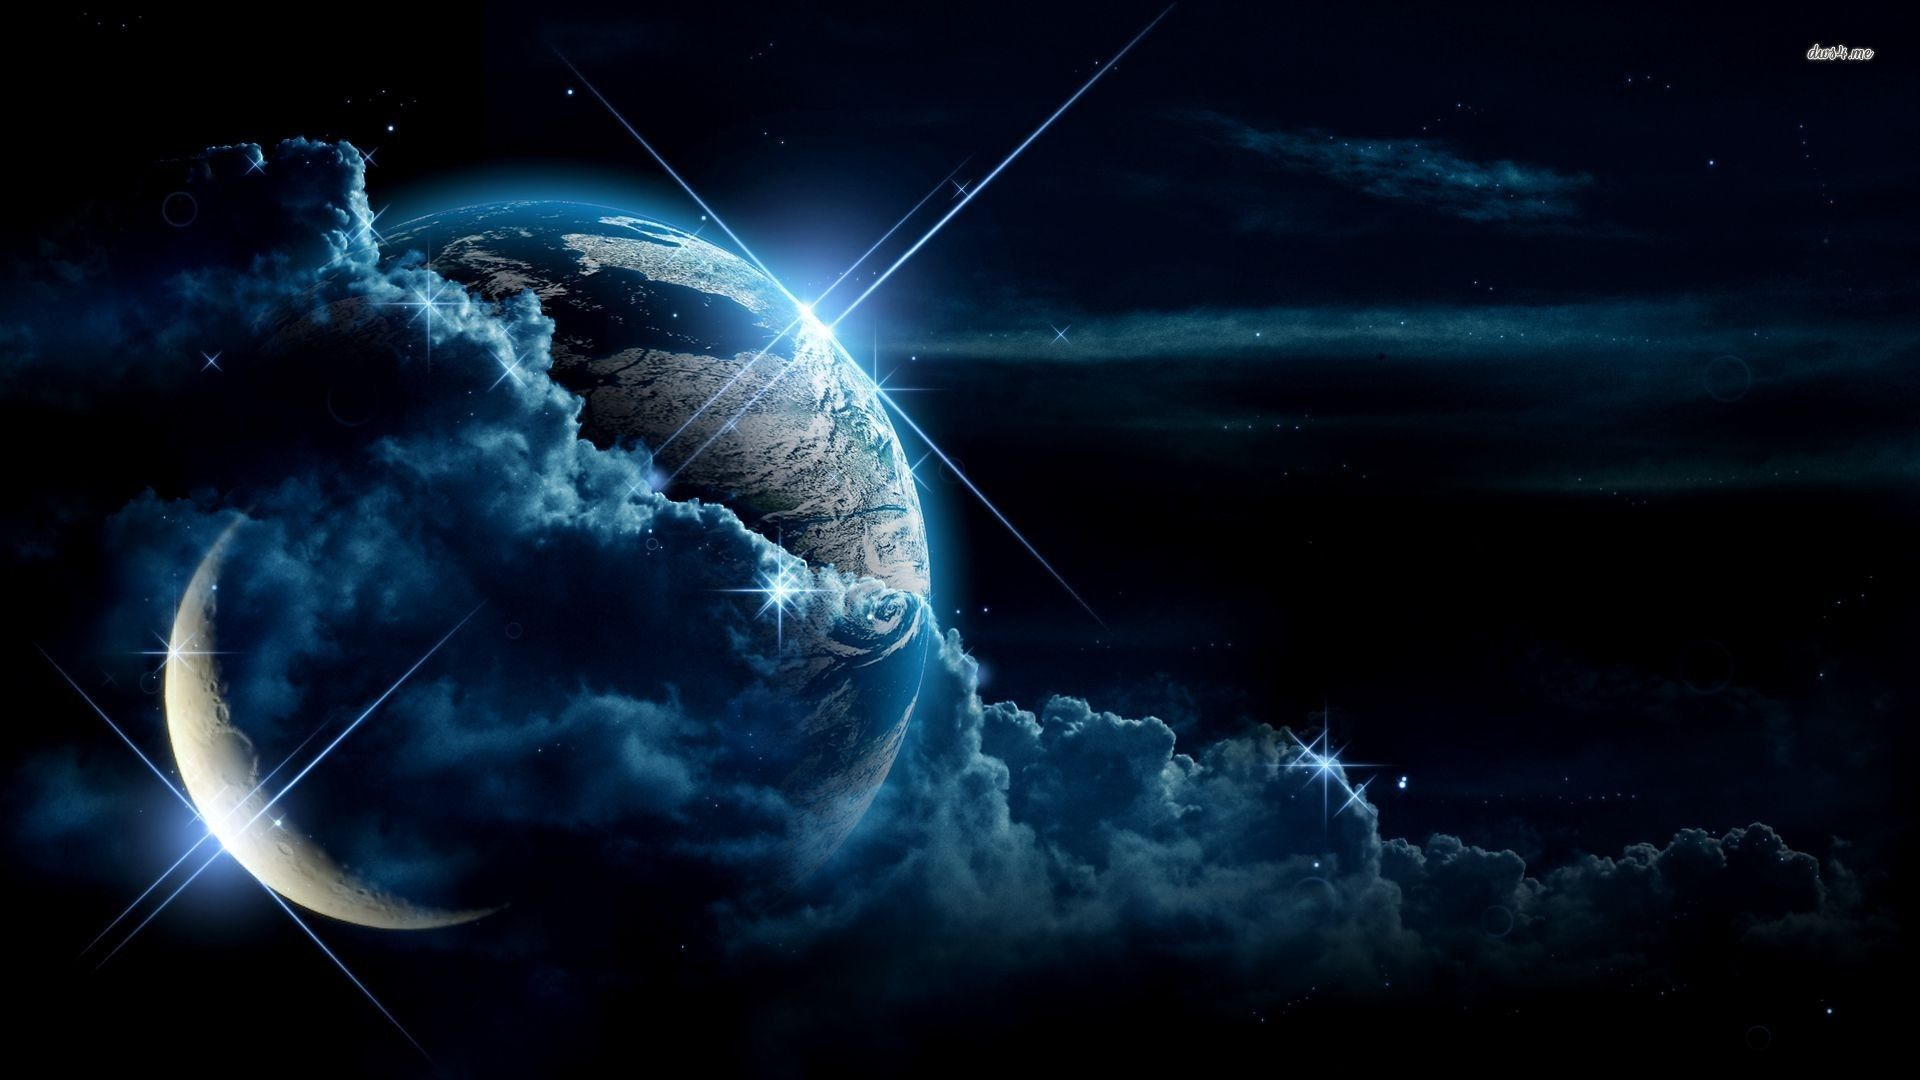 """Psalm 191 """"The heavens declare the glory of God"""" by Mary"""